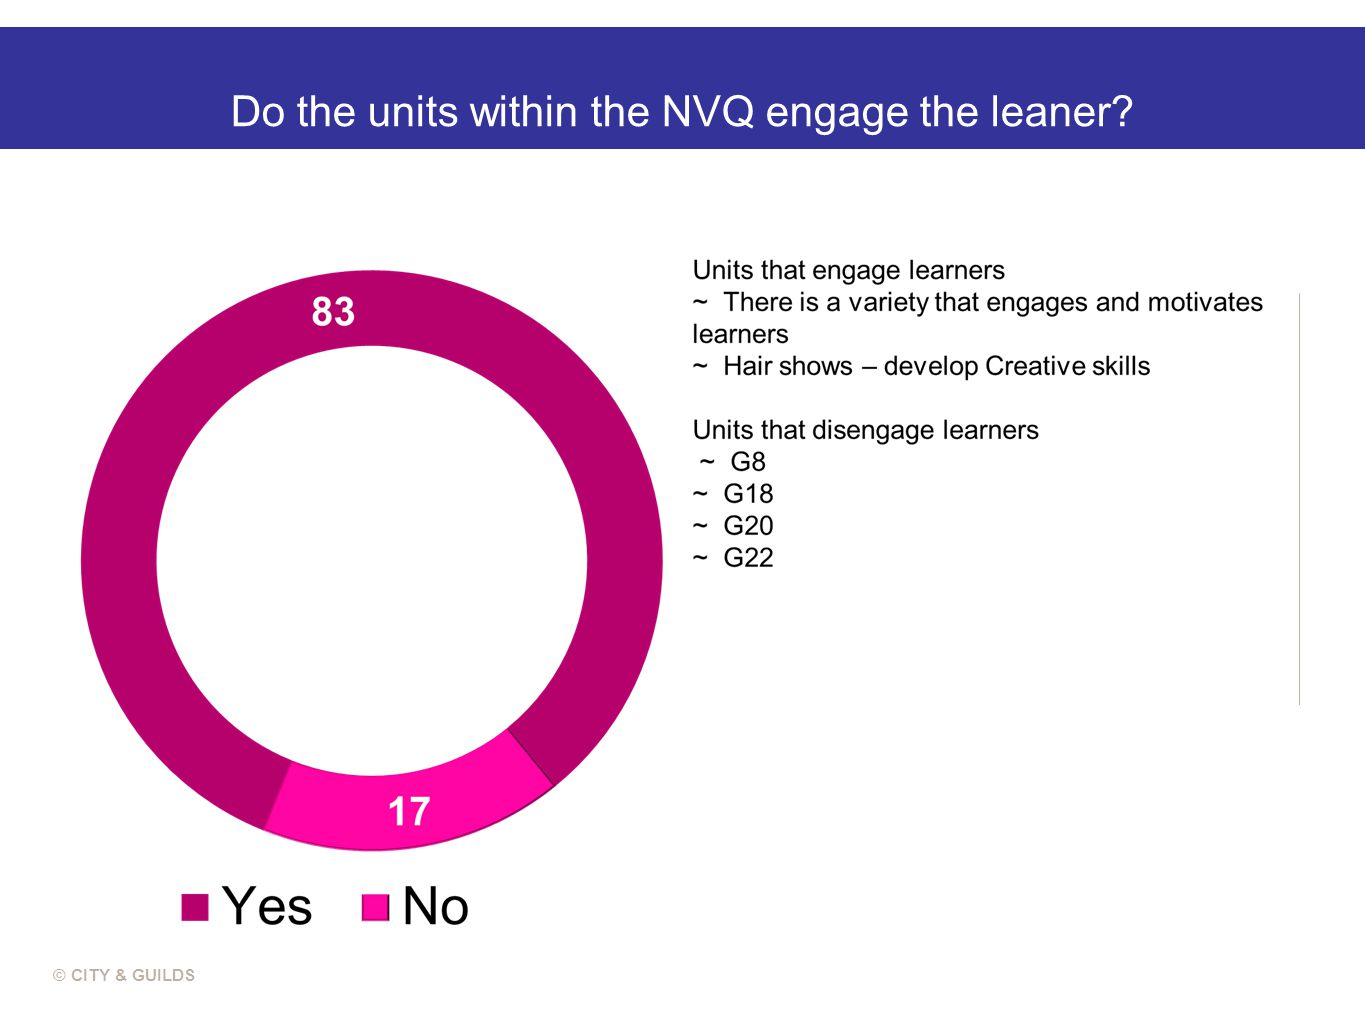 Do the units within the NVQ engage the leaner © CITY & GUILDS